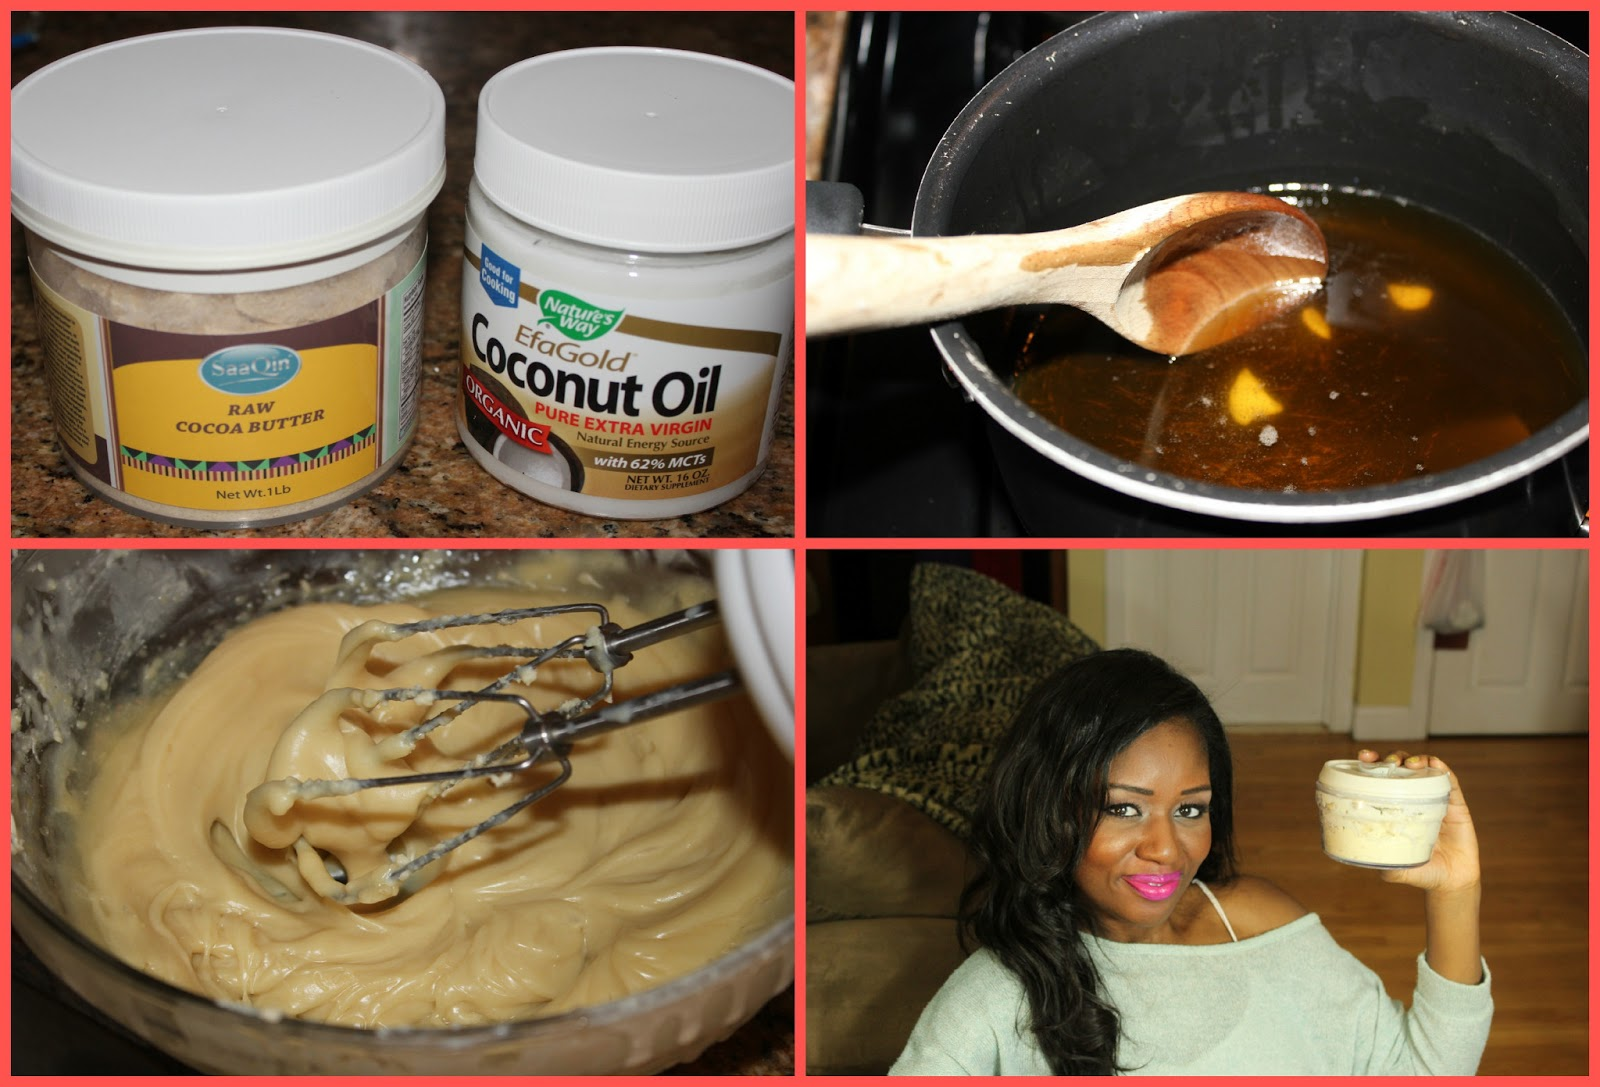 DIY-COCOA-BUTTER-NATURAL-prevent-stretch-marks